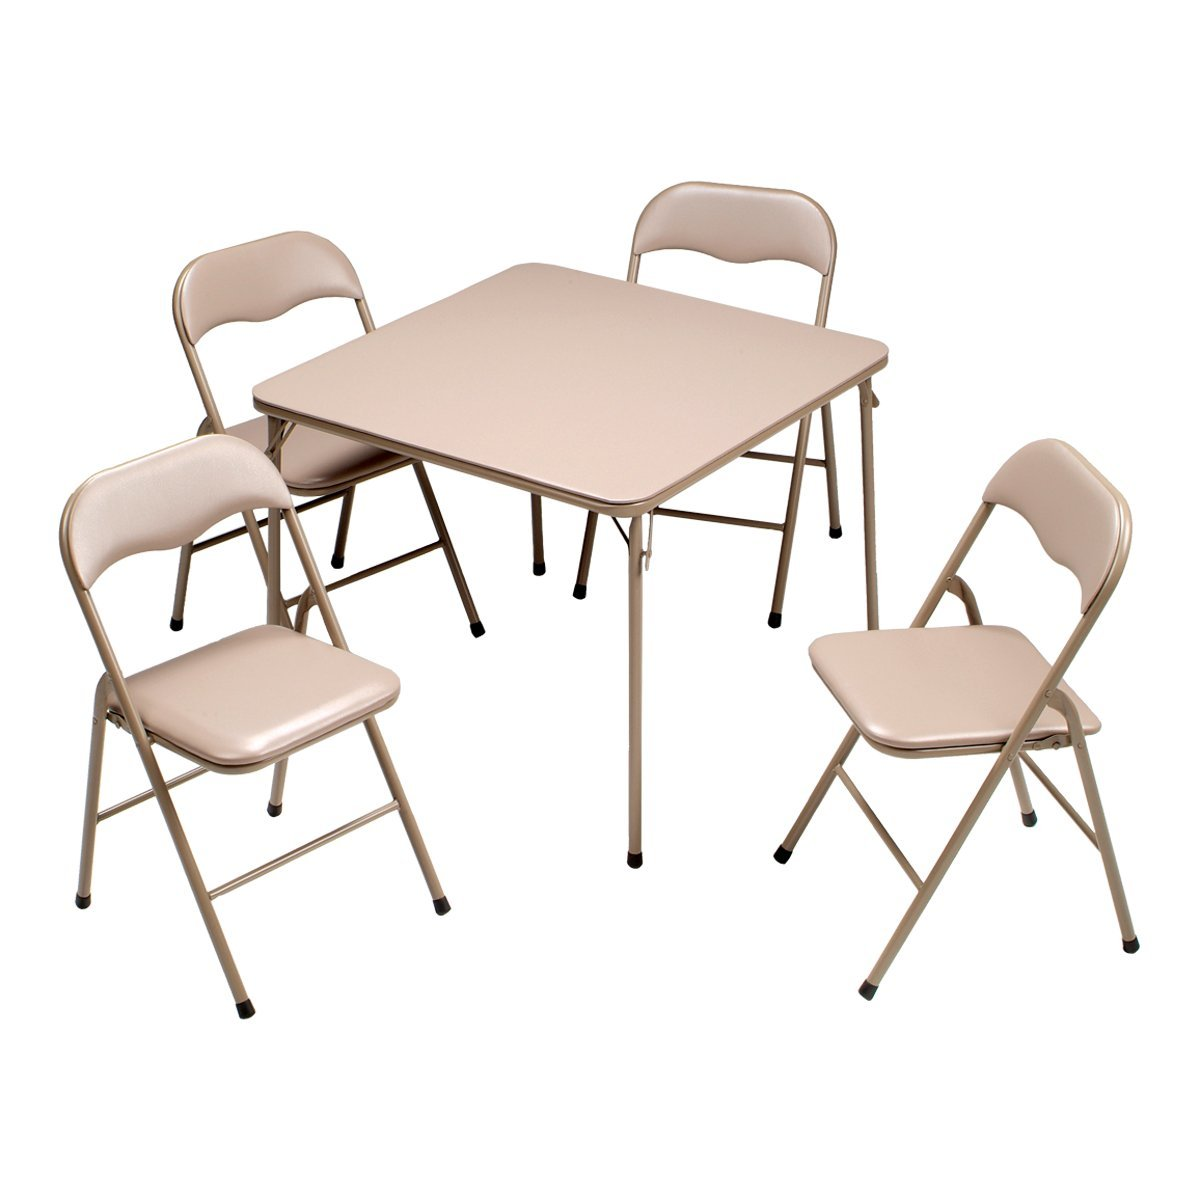 Amazon.com: Meco 5-Piece Folding Table and Chair Set, Black Frame ...